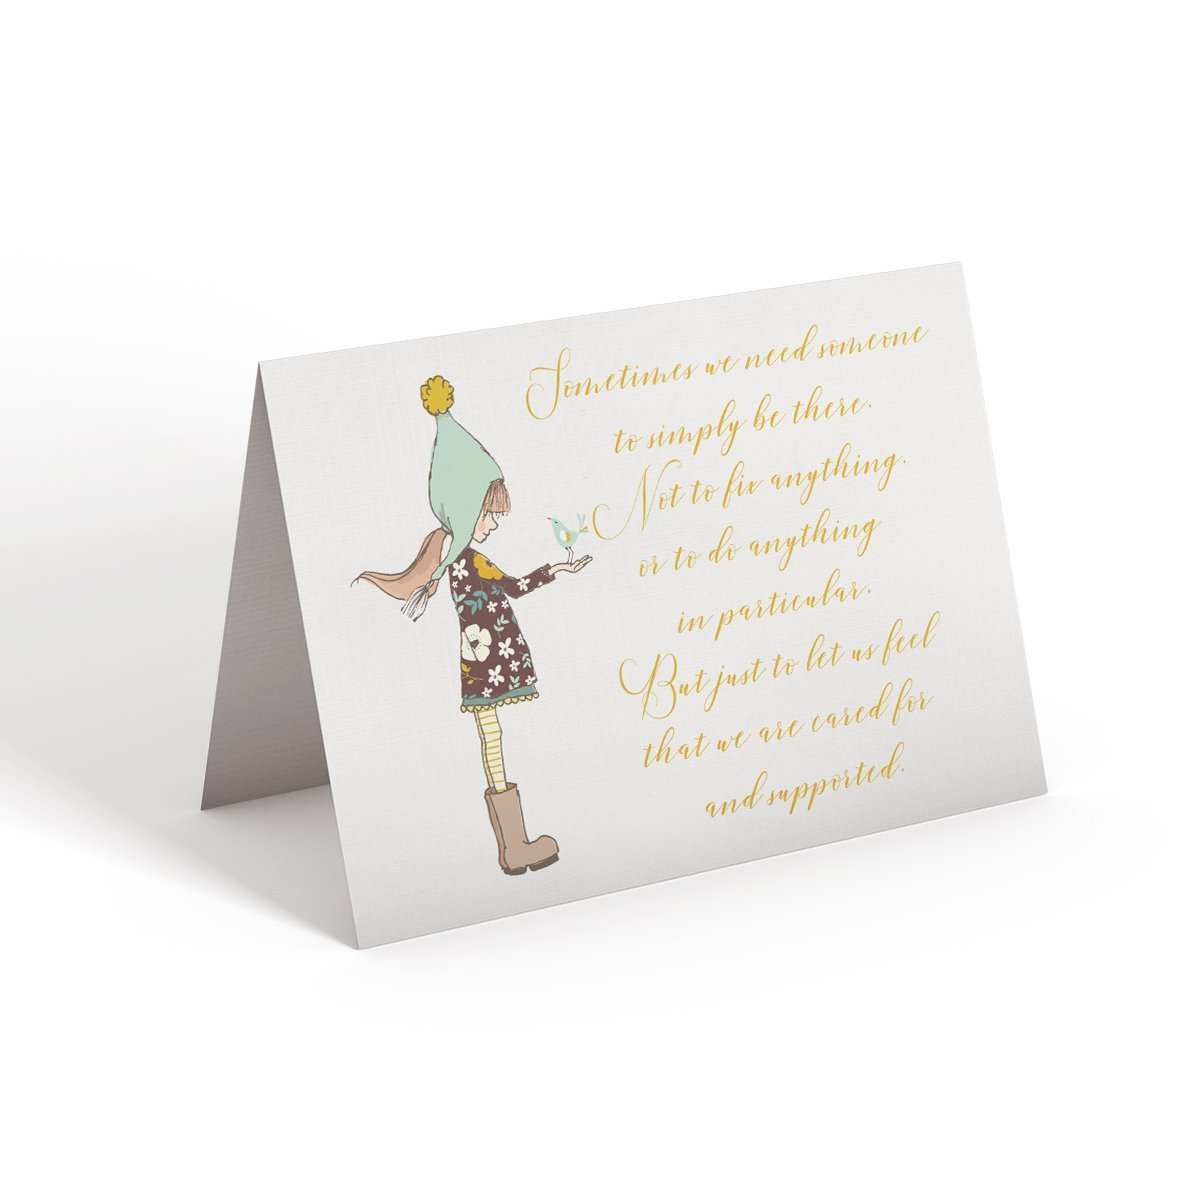 Sometimes we need someone - Greeting Card - Netties Expressions